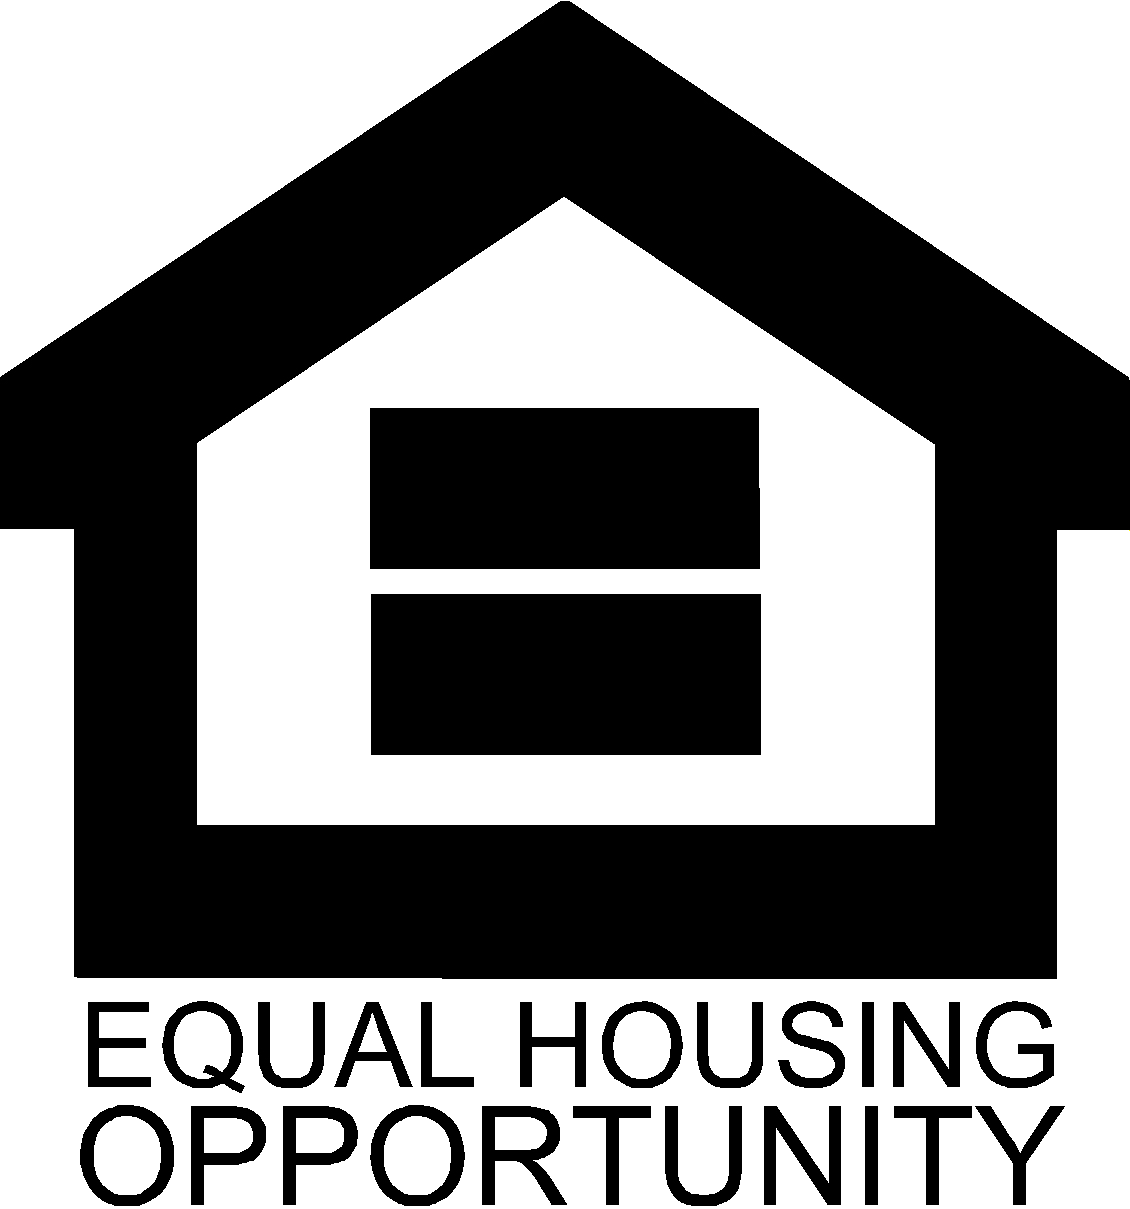 equal-housing-opportunity-logo-transparent.png